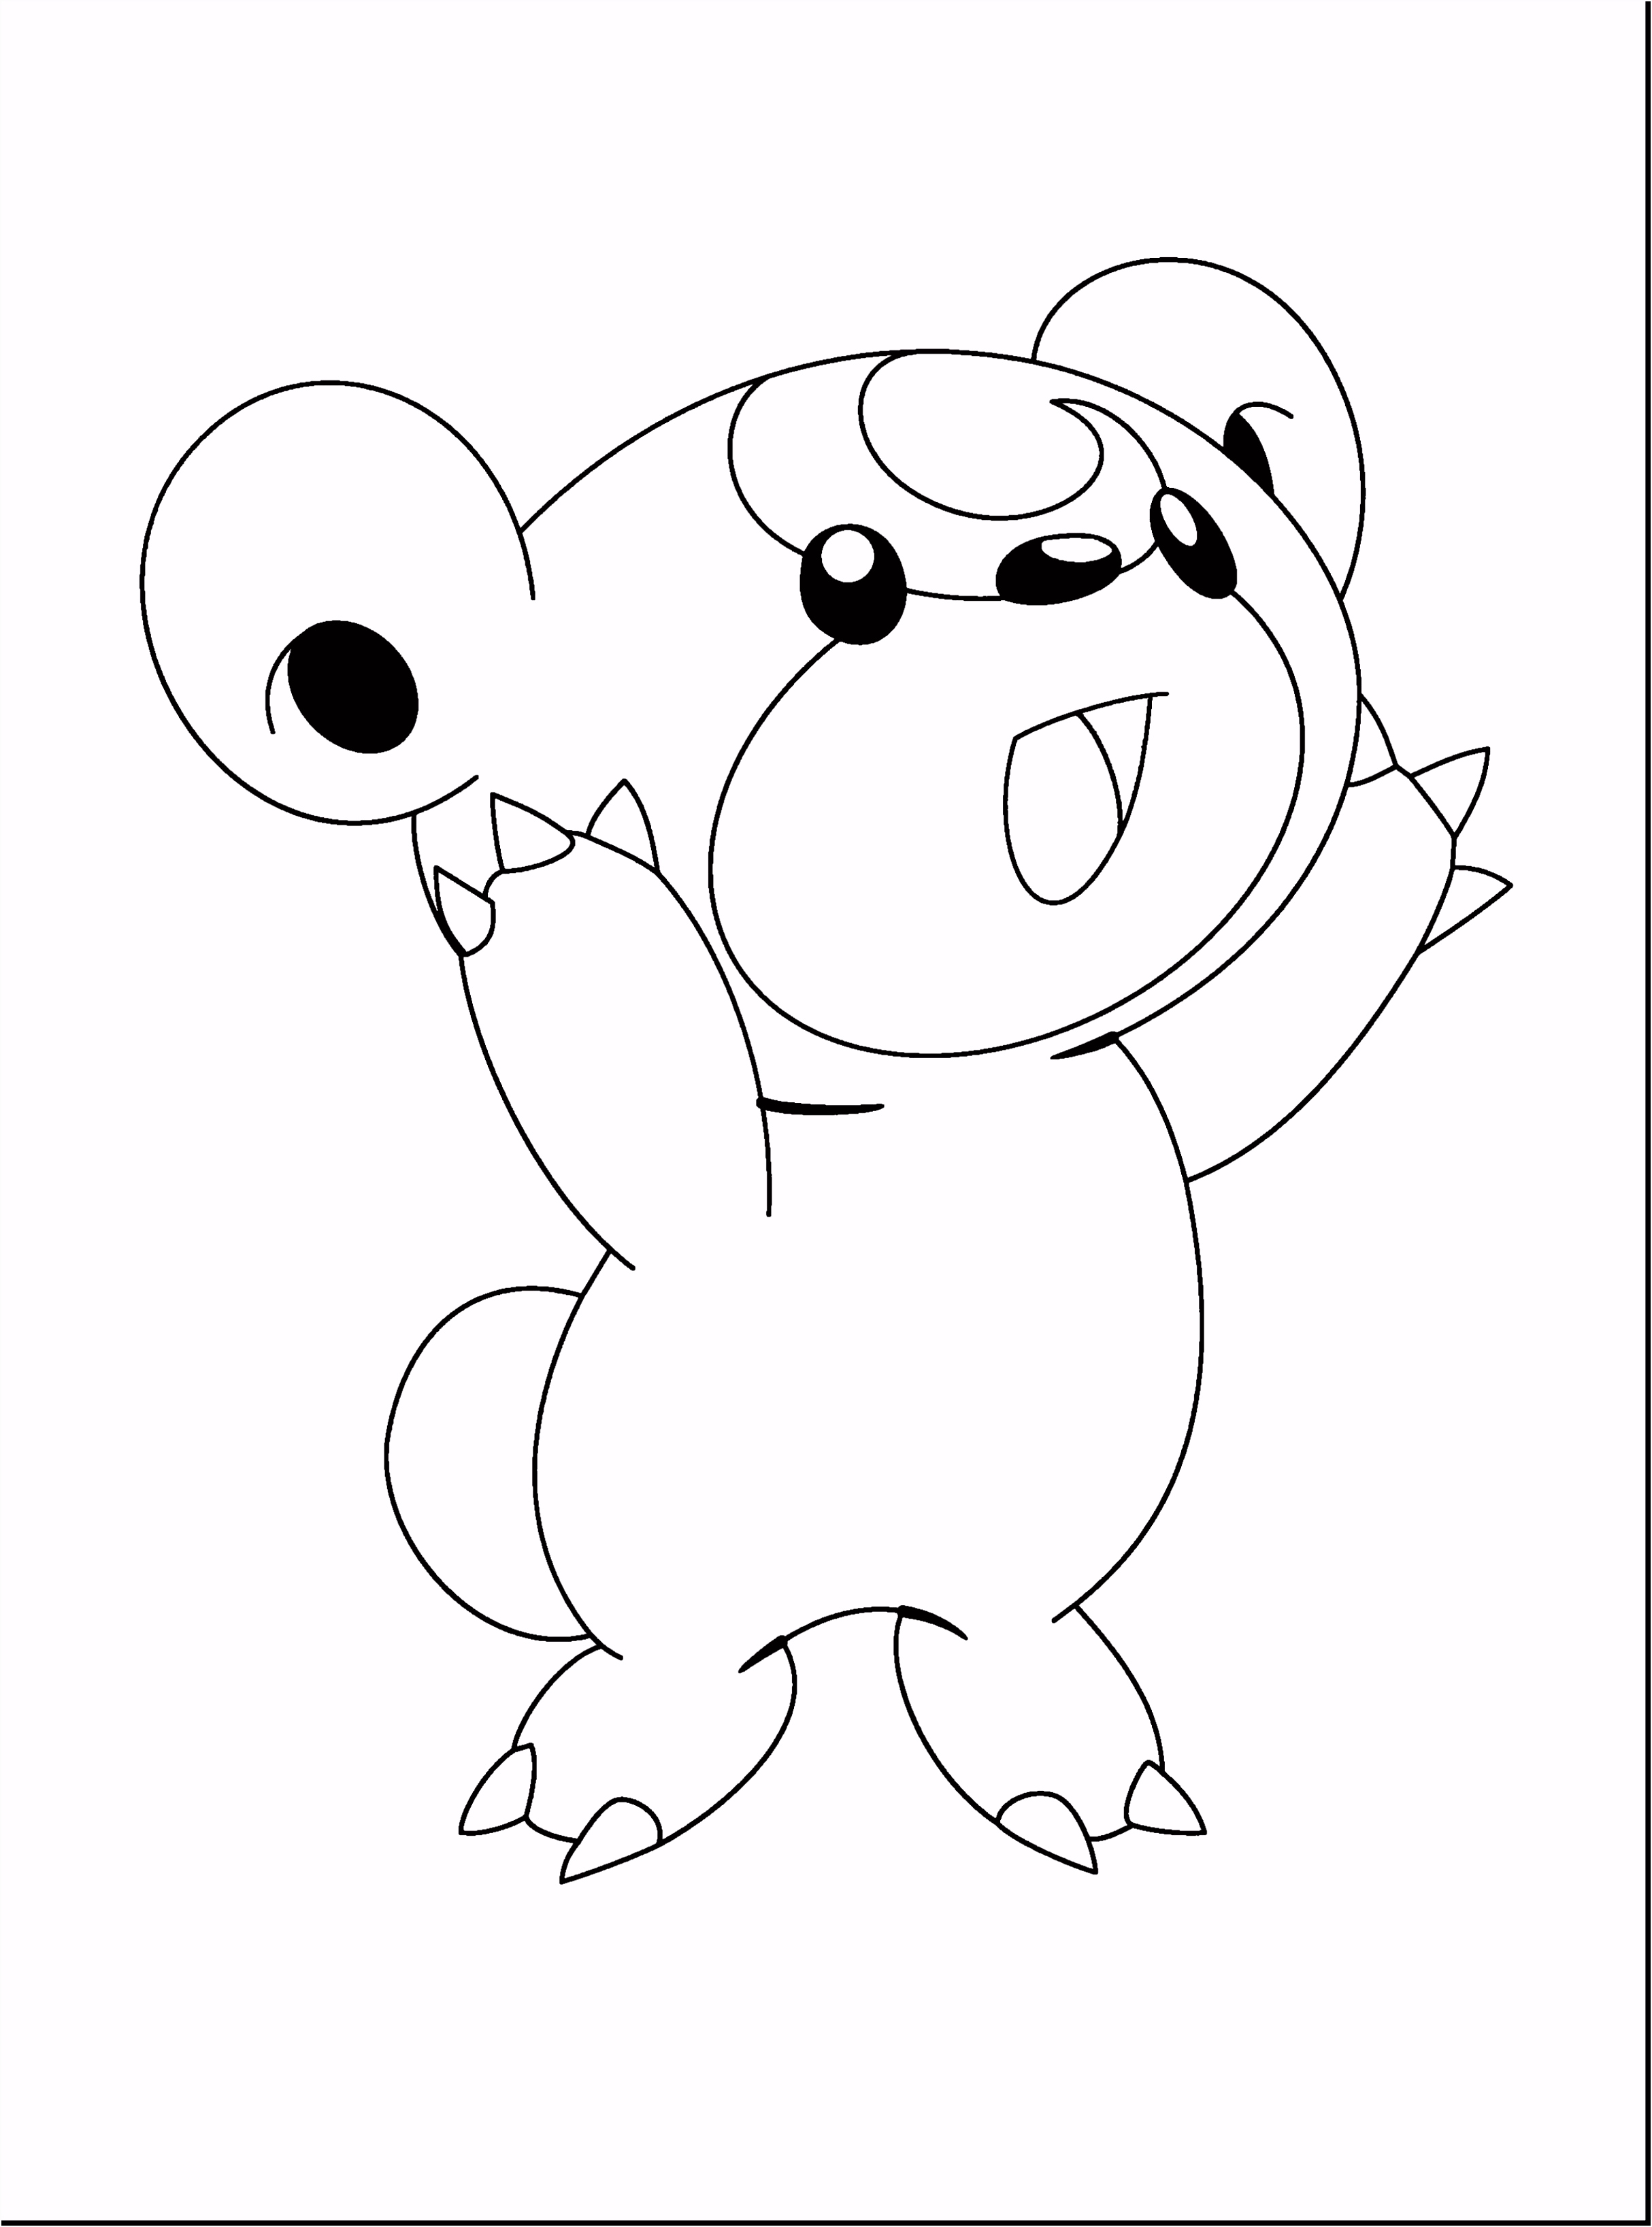 Pokemon Eevee Coloring Pages Alphabet Coloring Worksheets Lovely